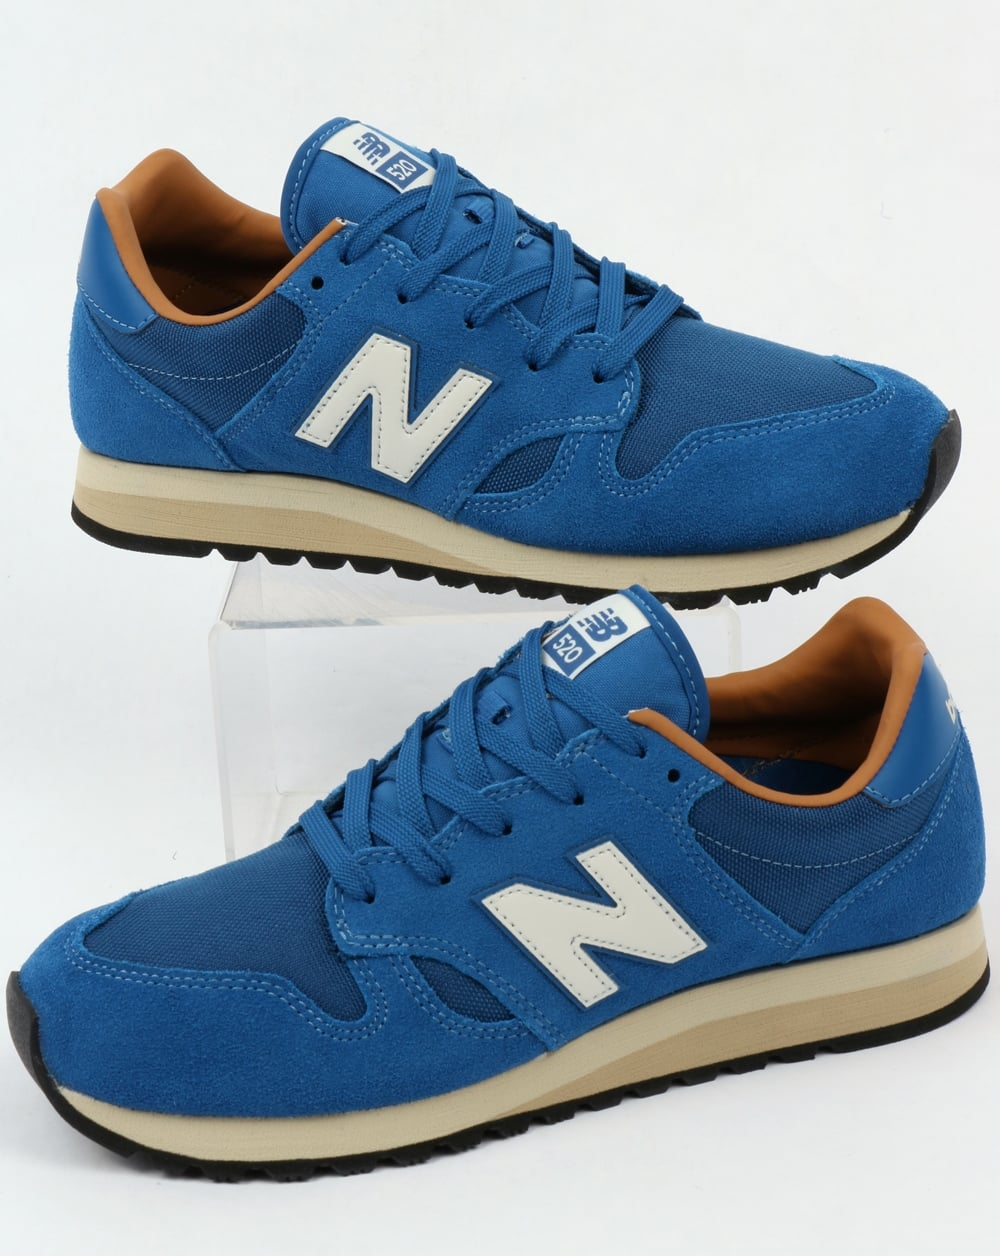 new balance 520 trainers classic blue brown sugar shoes running runners. Black Bedroom Furniture Sets. Home Design Ideas